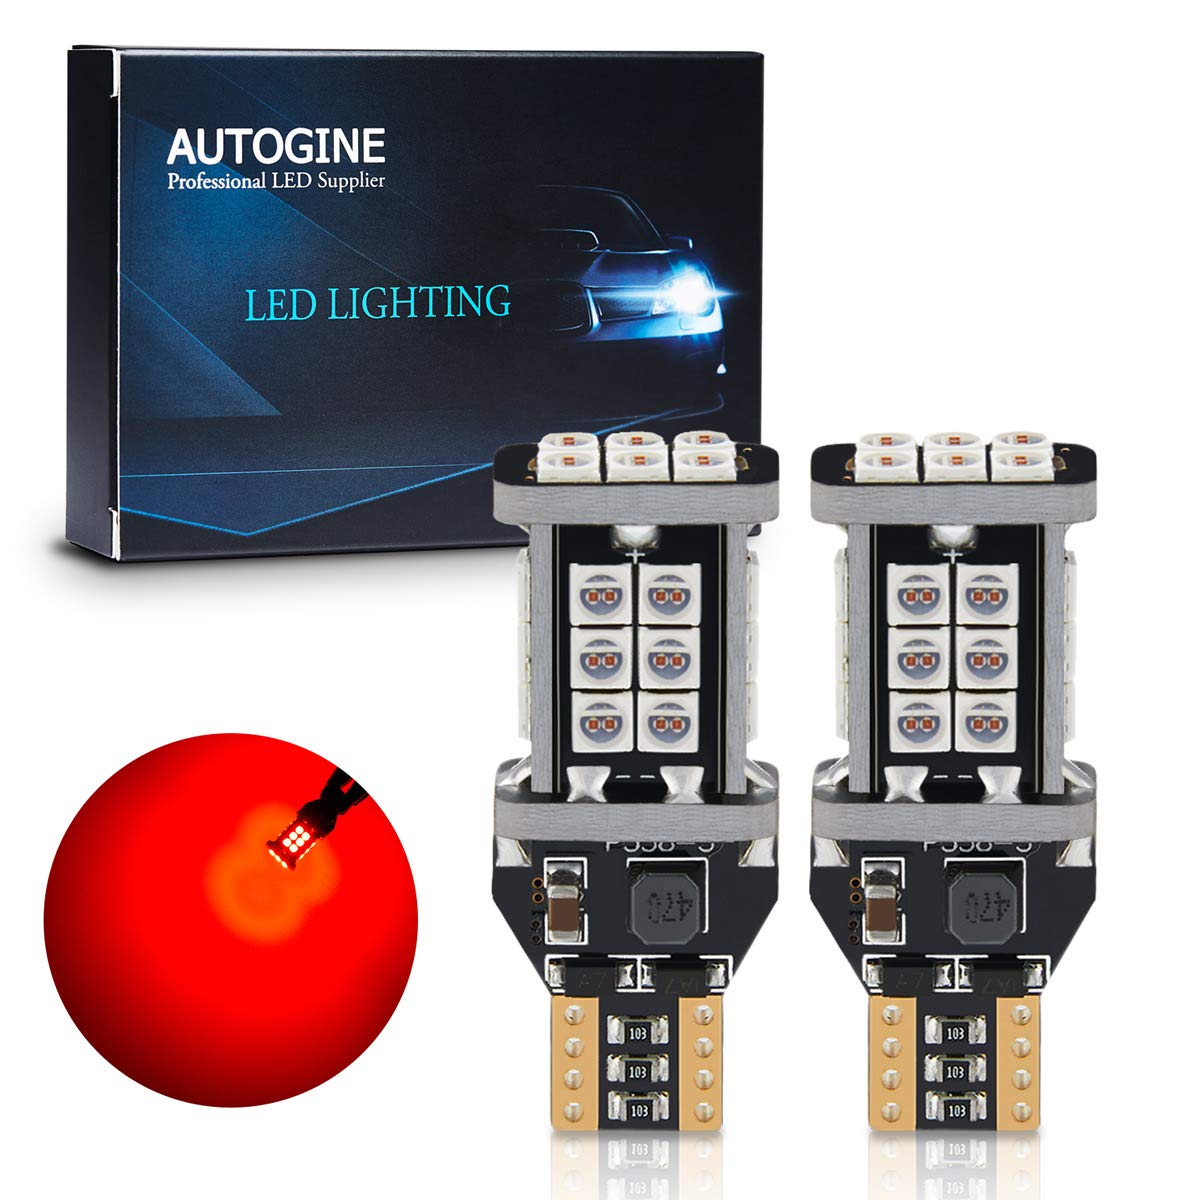 AUTOGINE 4 X Super Bright 9-30V 7440 7441 7443 7444 992 LED Bulbs 3014 54-EX Chipsets with Projector for Tail Lights Brake Lights Turn Signal Lights Brilliant Red